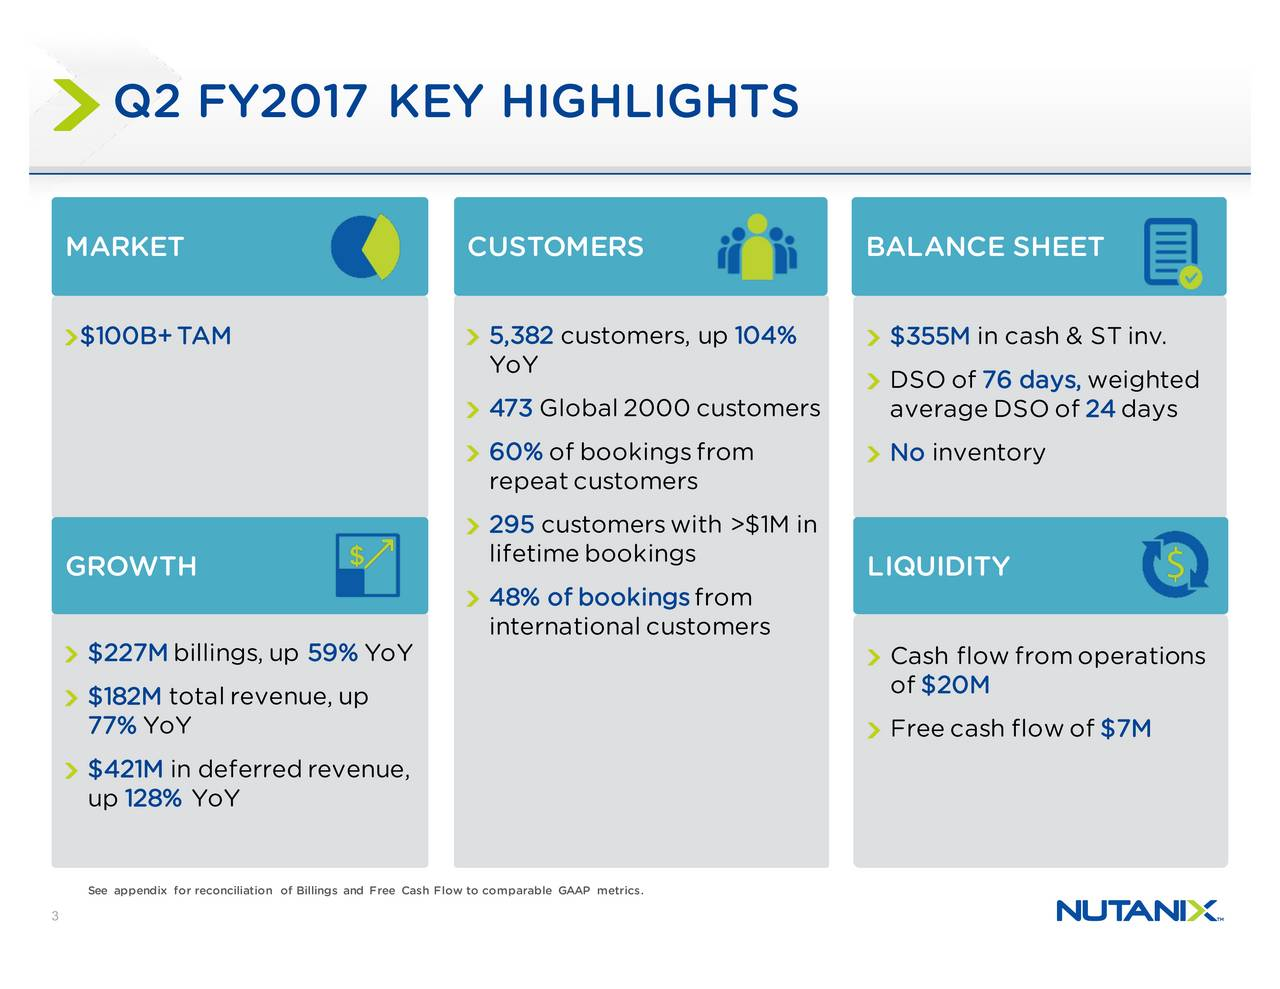 MARKET CUSTOMERS BALANCE SHEET $100B+TAM 5,382 customers, up 104% $355M in cash & ST inv. YoY DSOof 76 days, weighted 473Global2000customers averageDSO of 24days 60% ofbookingsfrom No inventory repeat customers 295 customerswith >$1M in GROWTH lifetime bookings LIQUIDITY 48% ofbookings from internationalcustomers $227M billings, up 59% YoY Cash flow fromoperations $182M total revenue, up of $20M 77% YoY Freecash flowof $7M $421M in deferredrevenue, up 128% YoY See appendix for reconciliation of Billings and Free Cash Flow to comparable GAAP metrics. 3